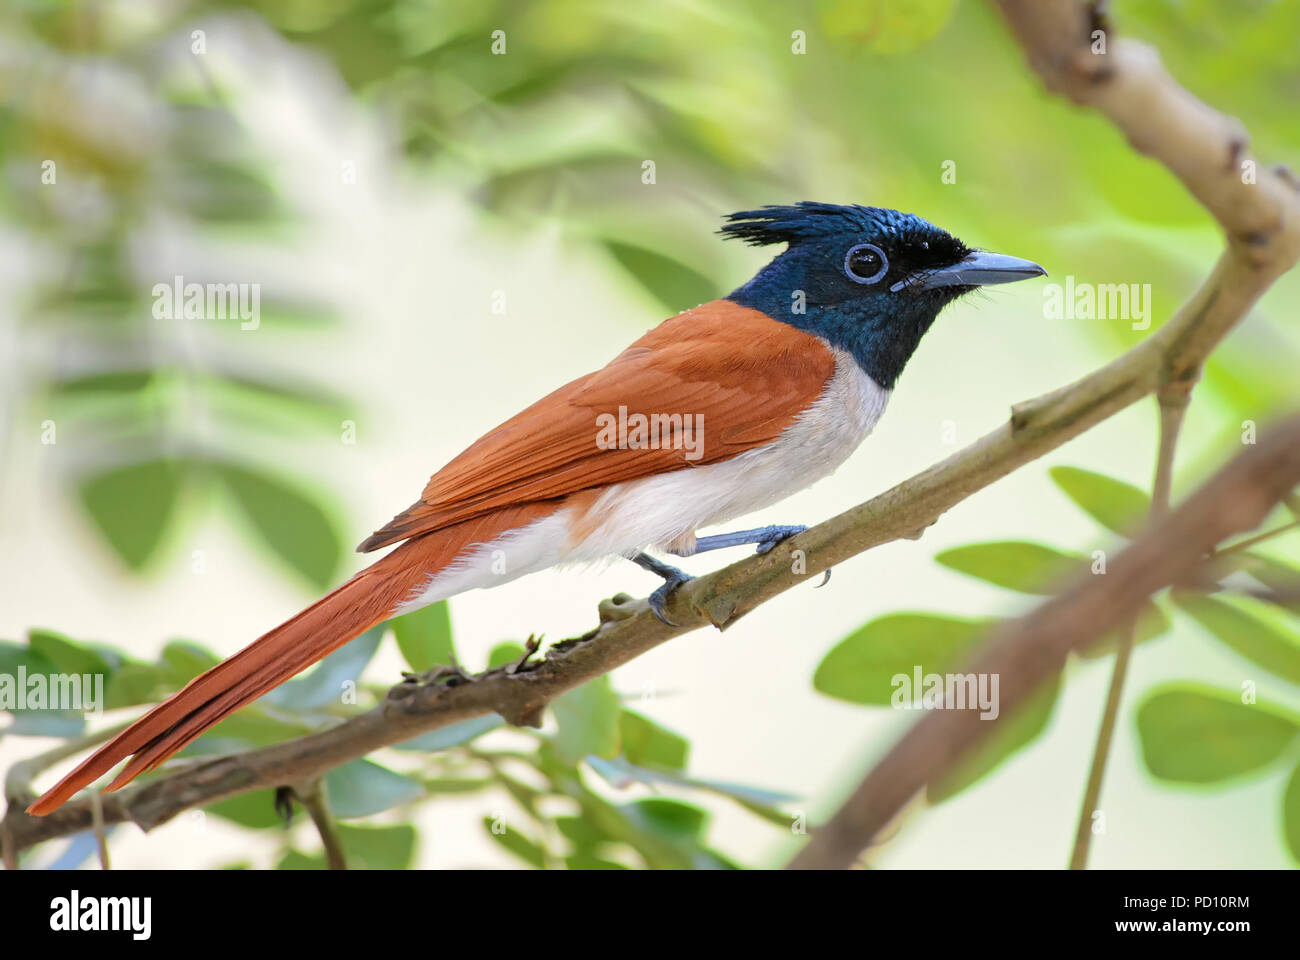 Asian Paradise-flycatcher - Terpsiphone paradisi, beautiful black headed passerine bird from Sri Lankan woodlands and gardens. - Stock Image